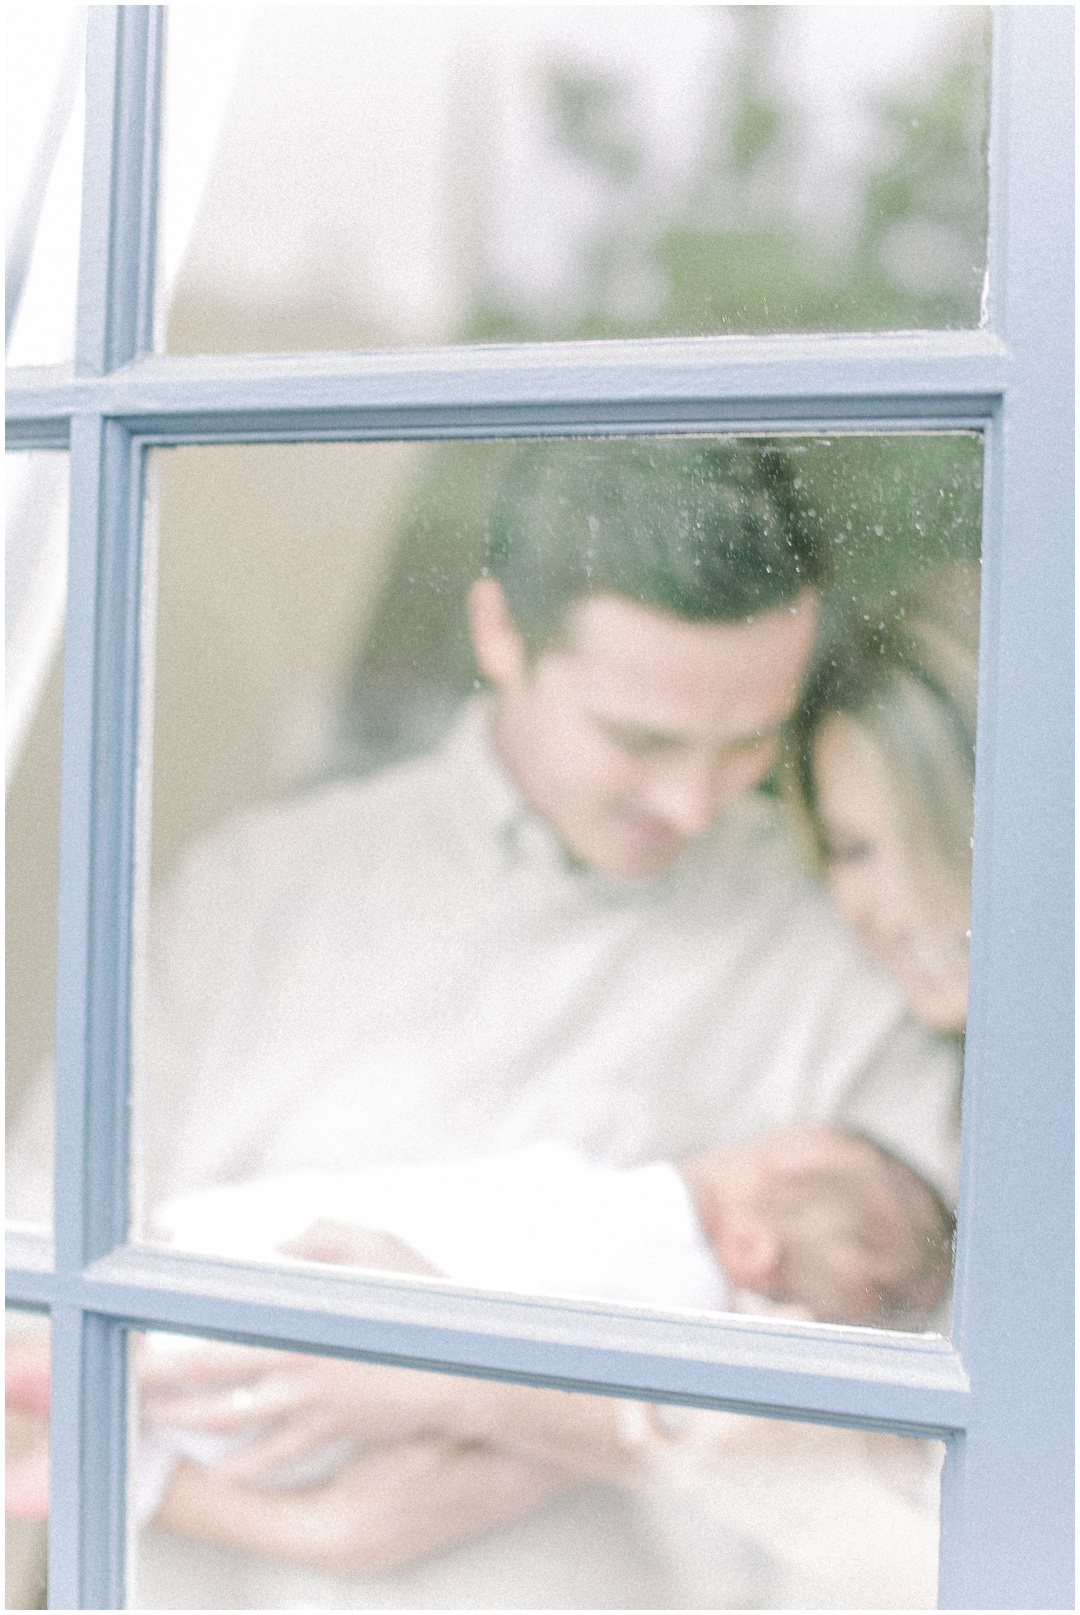 Newport_Beach_Newborn_Light_Airy_Natural_Photographer_Newport_Beach_Photographer_Orange_County_Family_Photographer_Cori_Kleckner_Photography_Huntington_Beach_Photographer_Family_OC_Maternity_Breanna_Santillo__3643.jpg